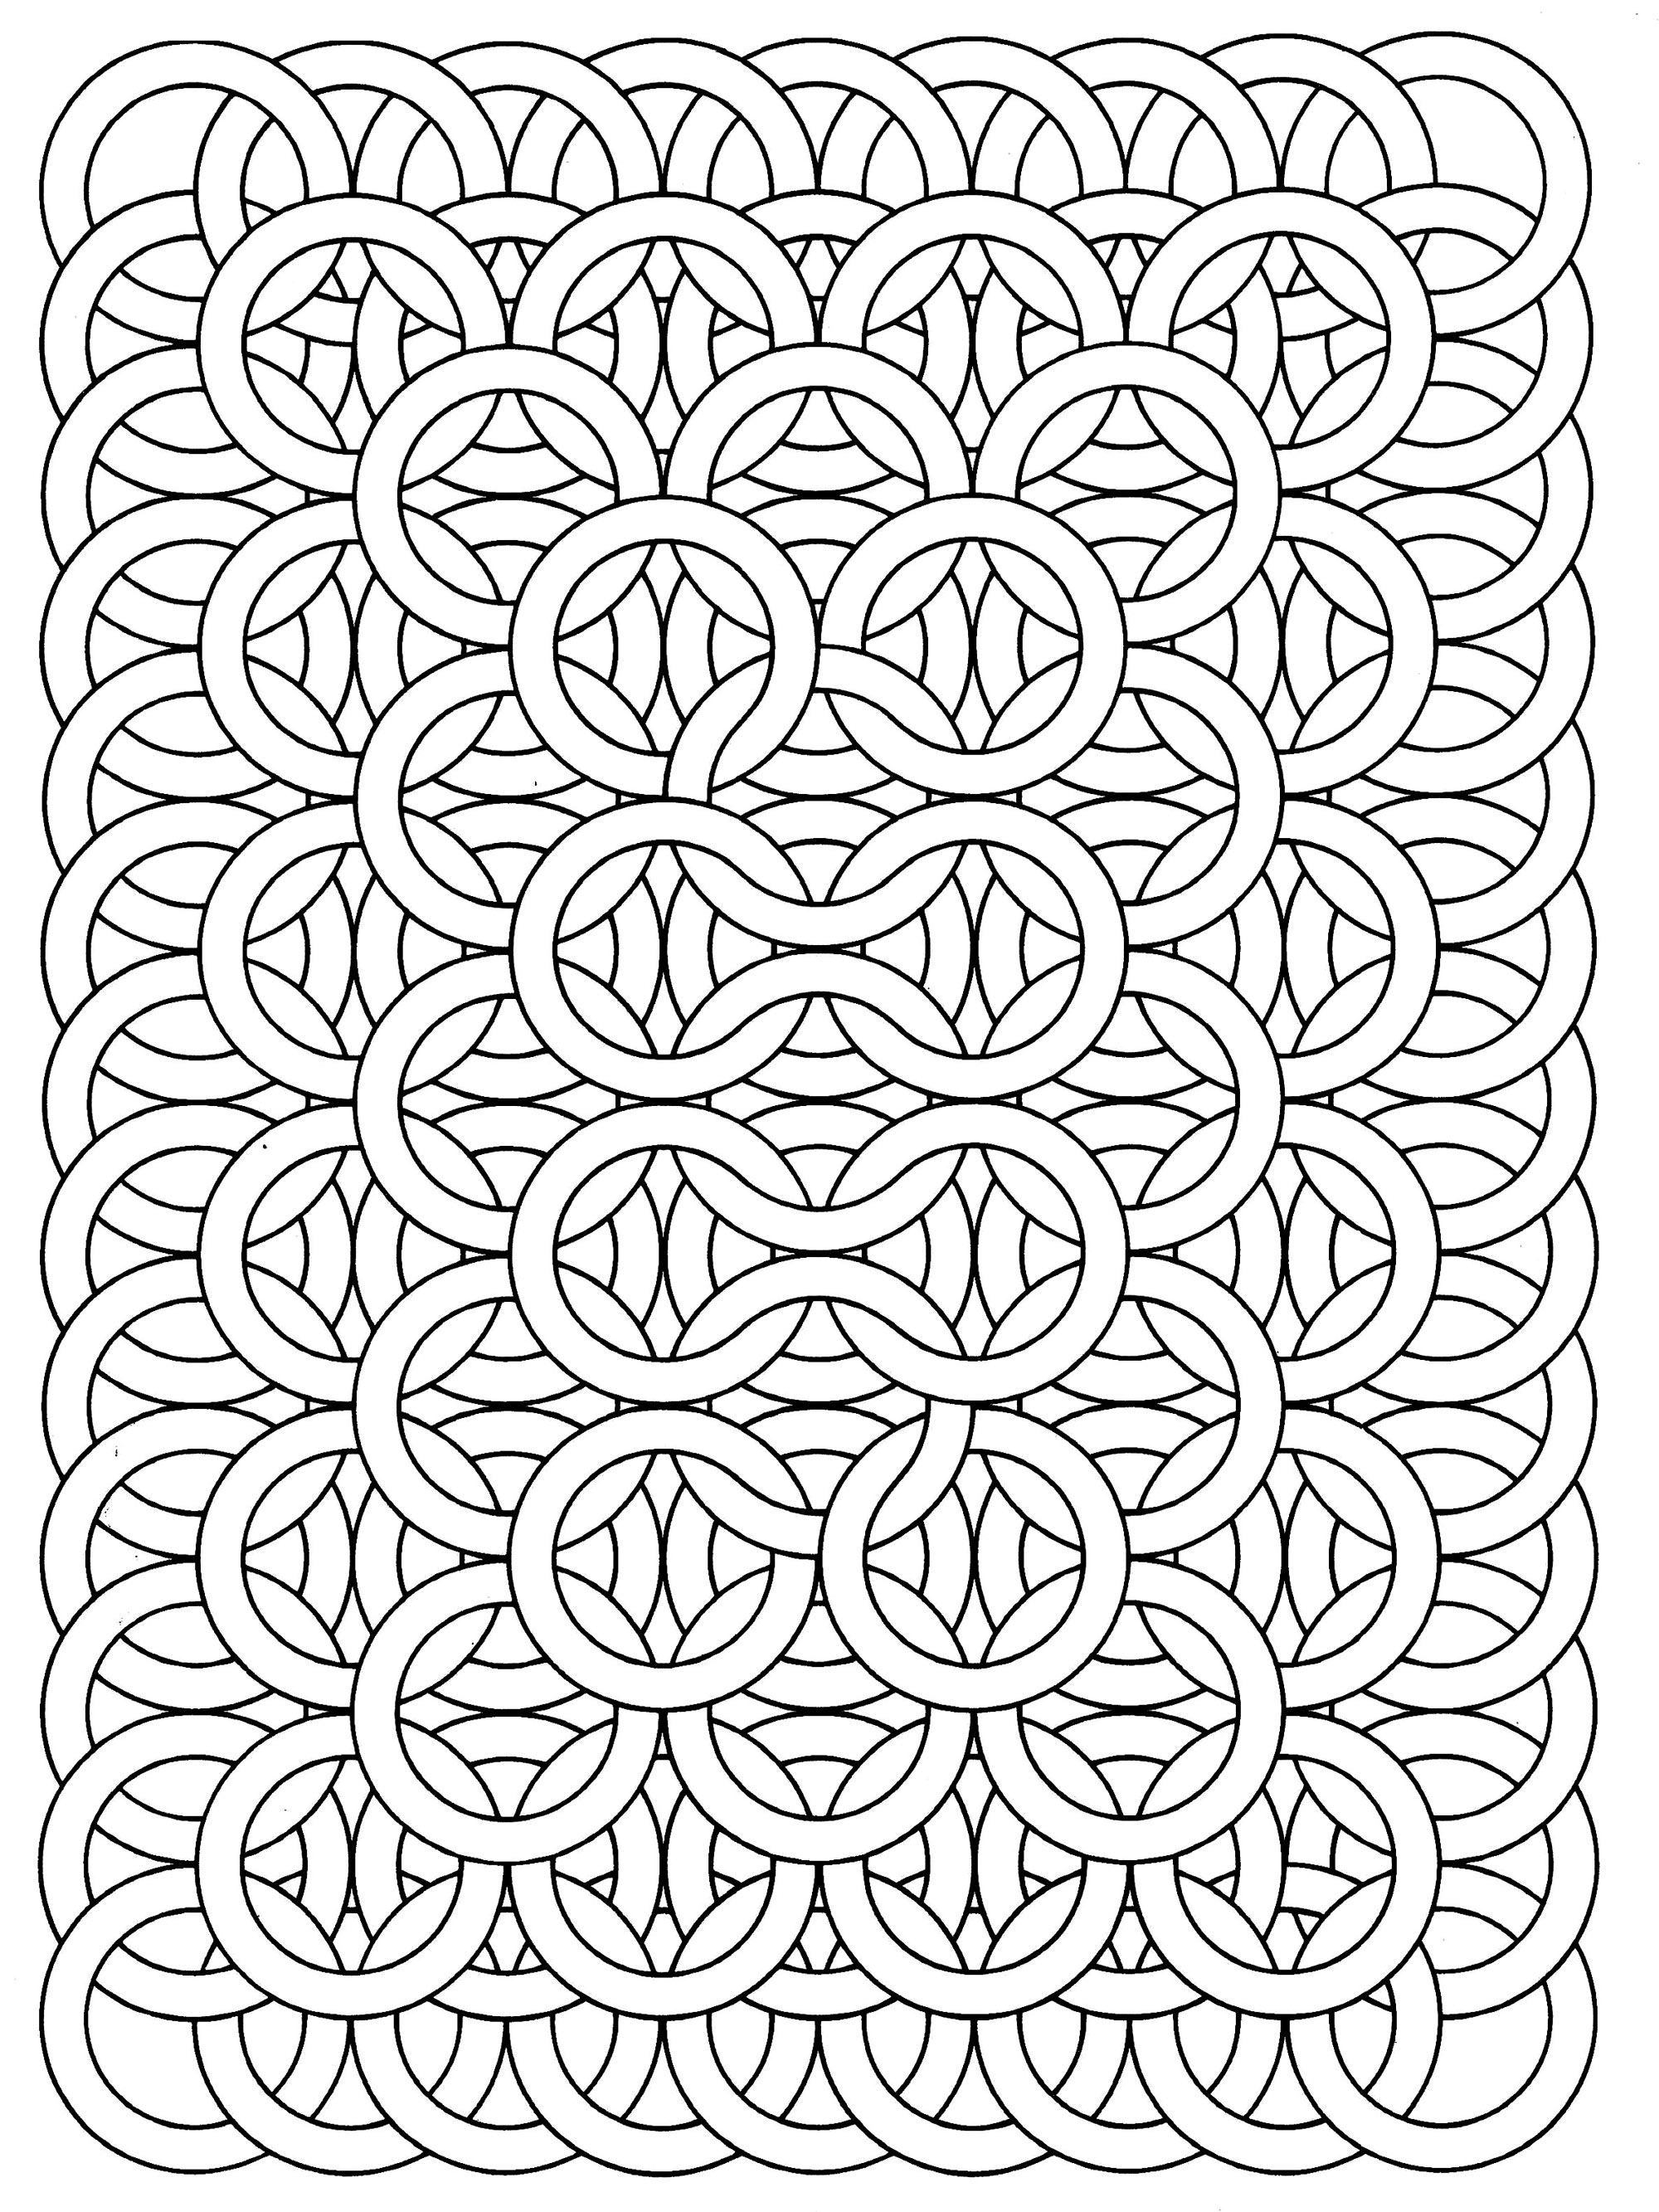 Adult Coloring Pages To Print Free Adult Coloring Pages Happiness Is Homemade